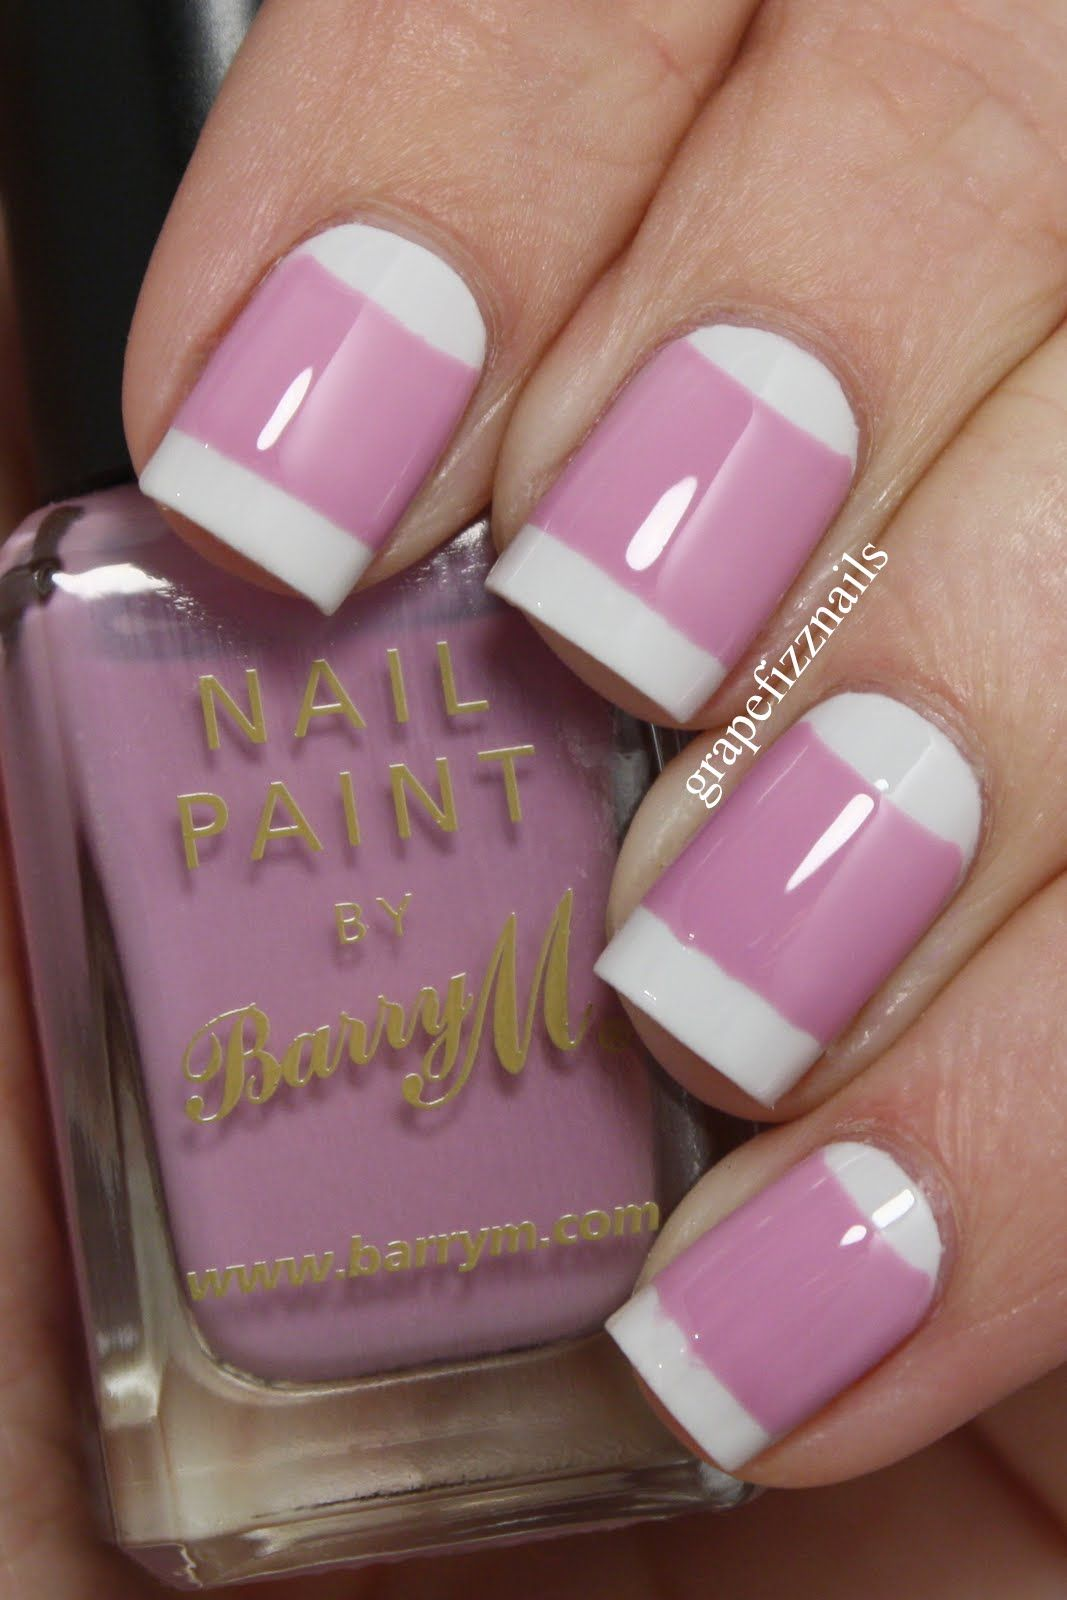 MyKarnation loves these nails! Pink and white....beauty and cosmetics (makeup)